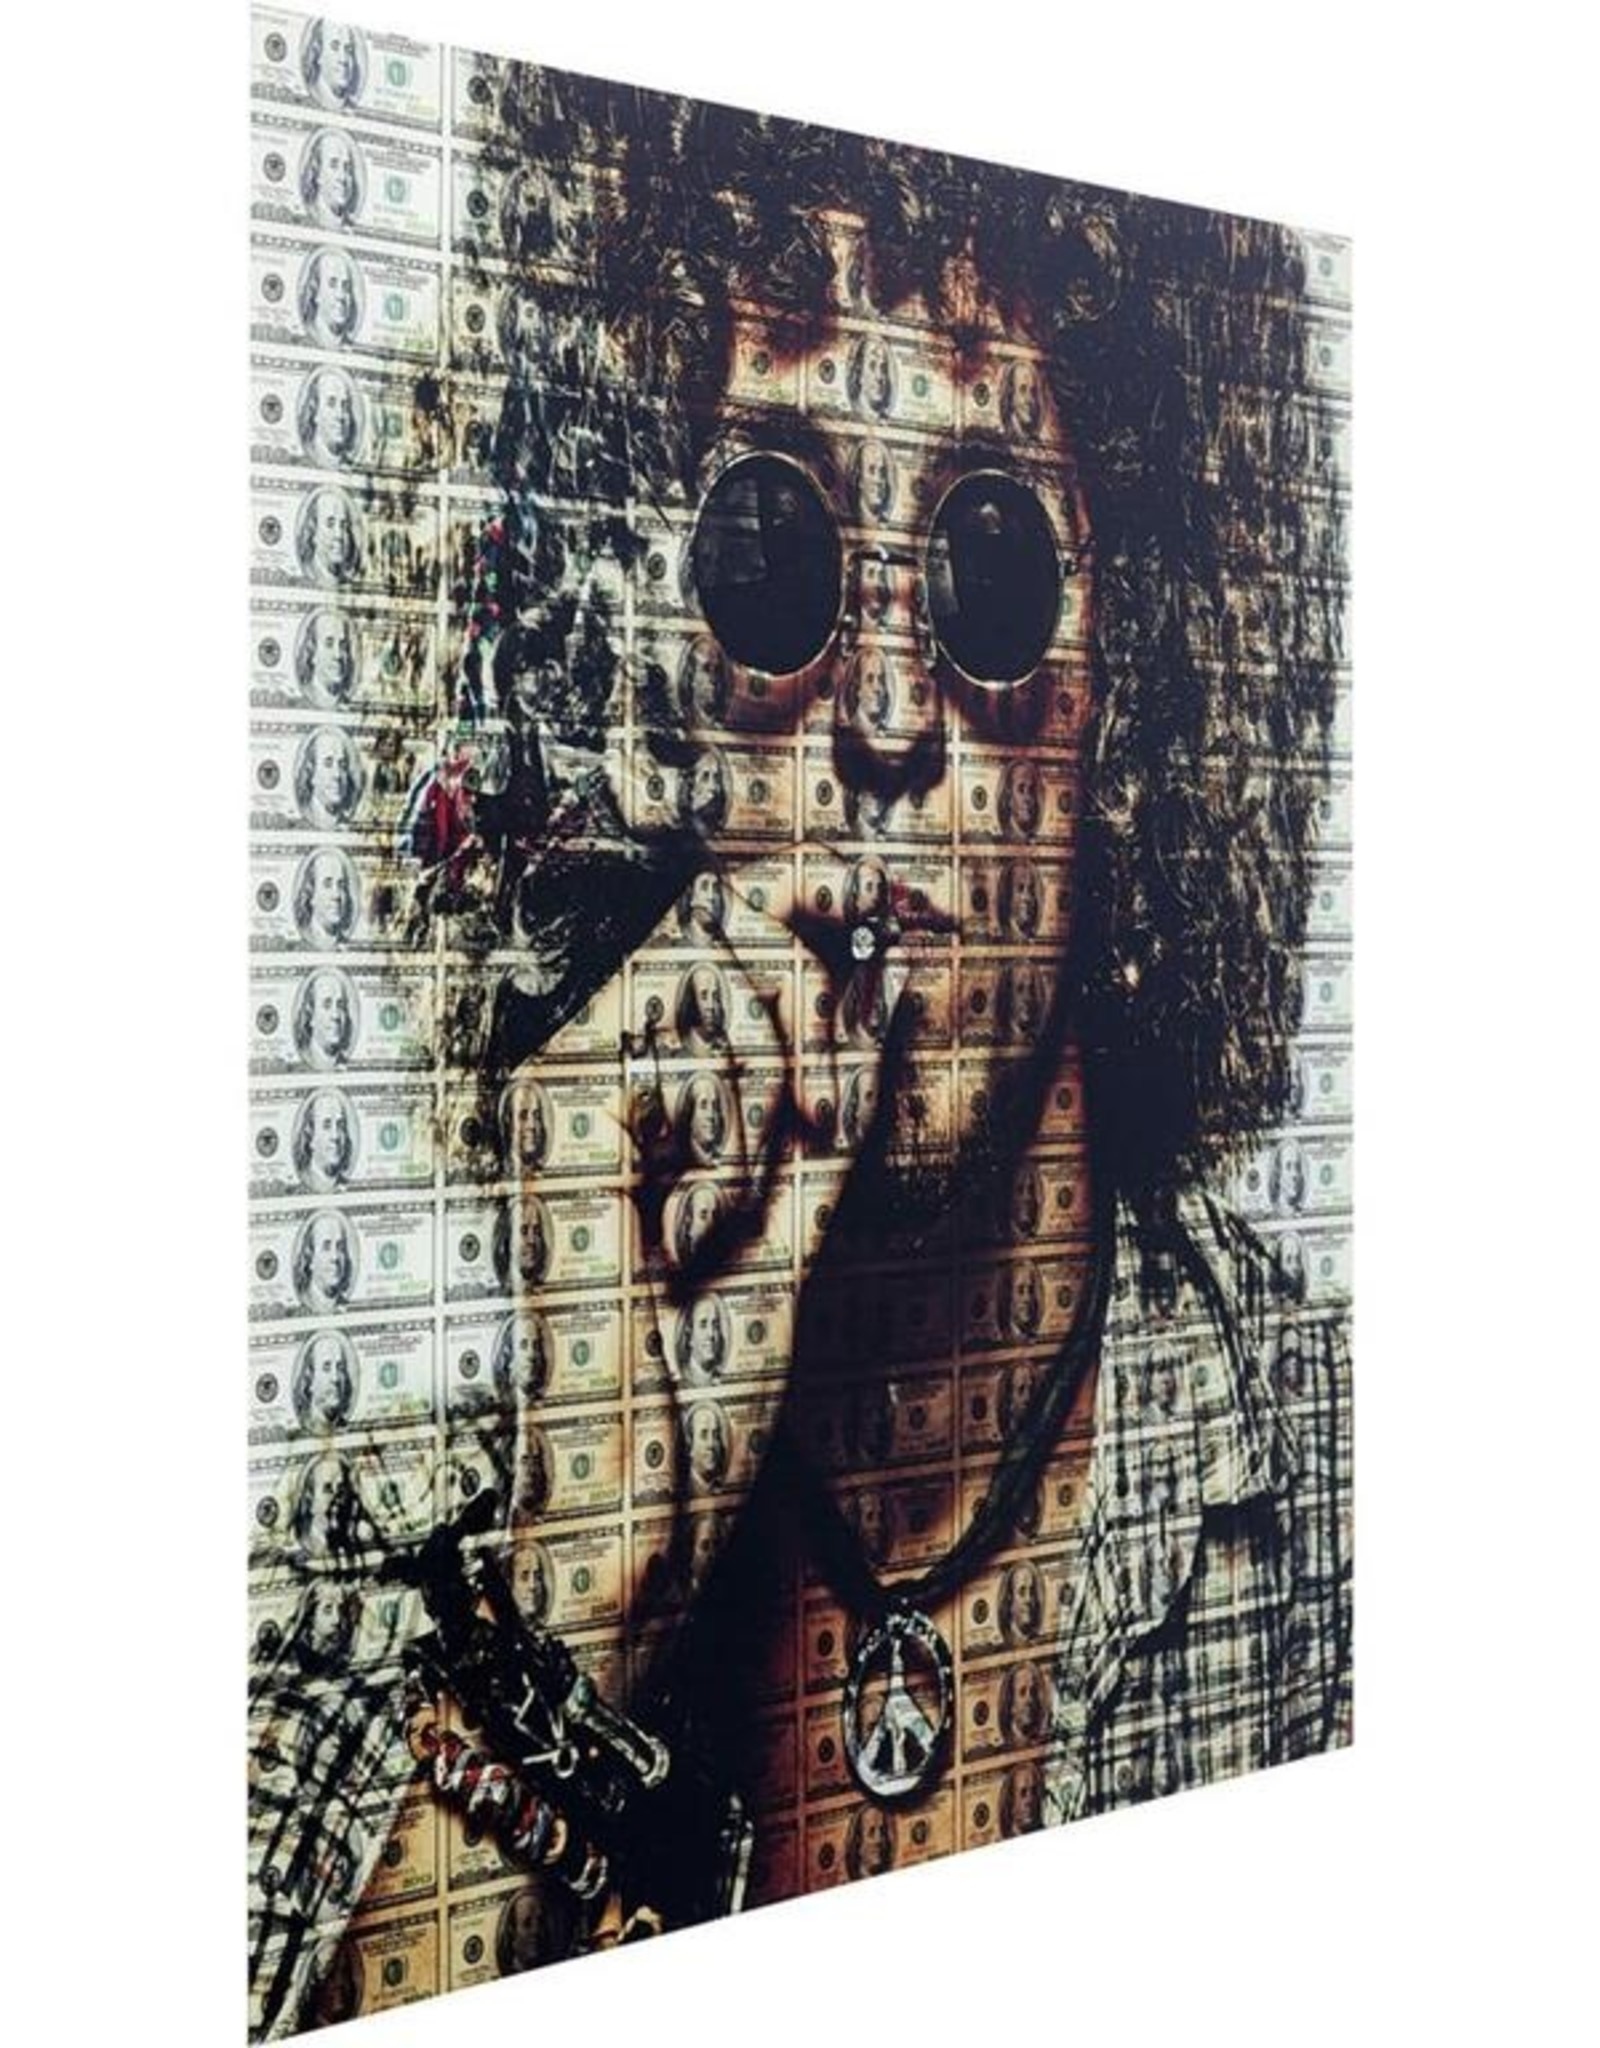 Picture Glass Banknotes 100x100cm